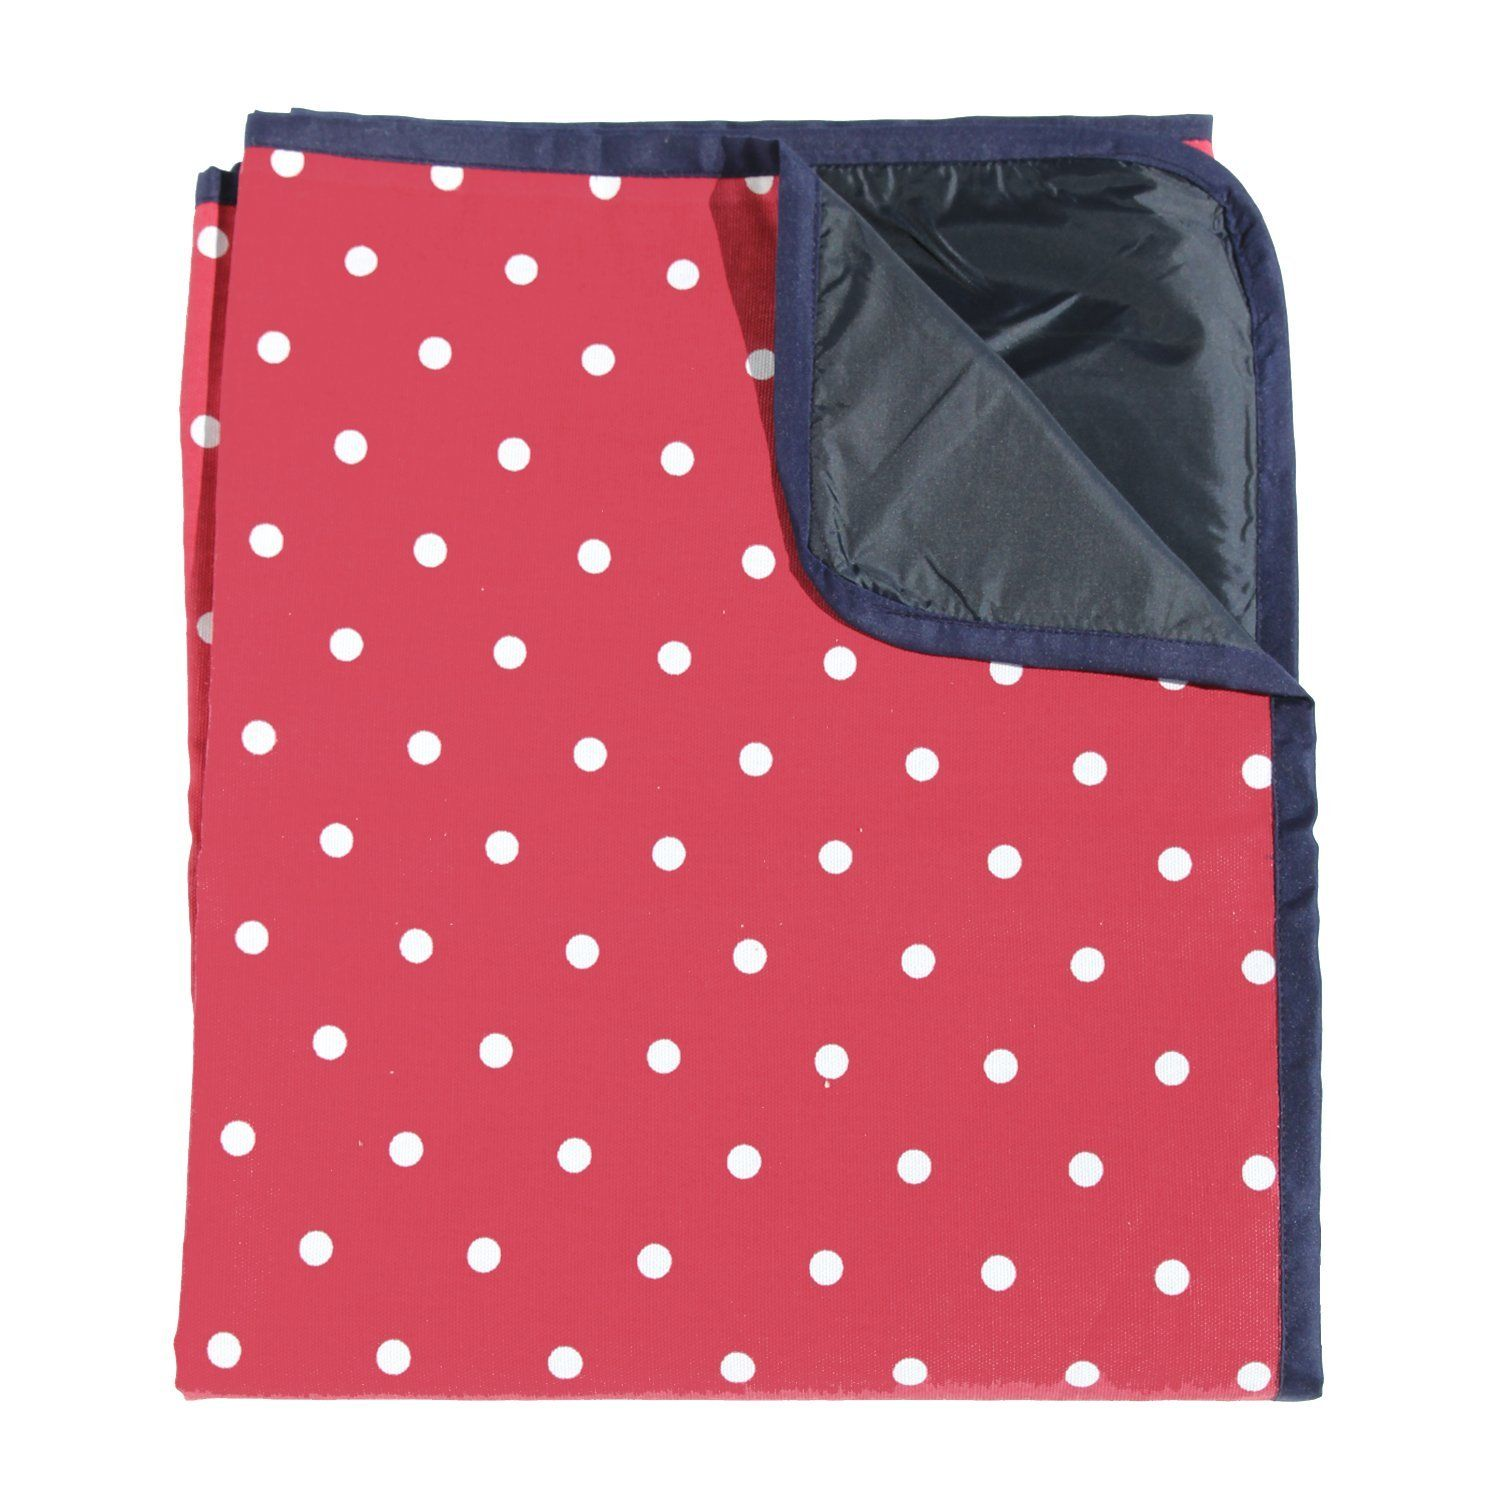 Picnic Blanket In A Compact Carry Bag